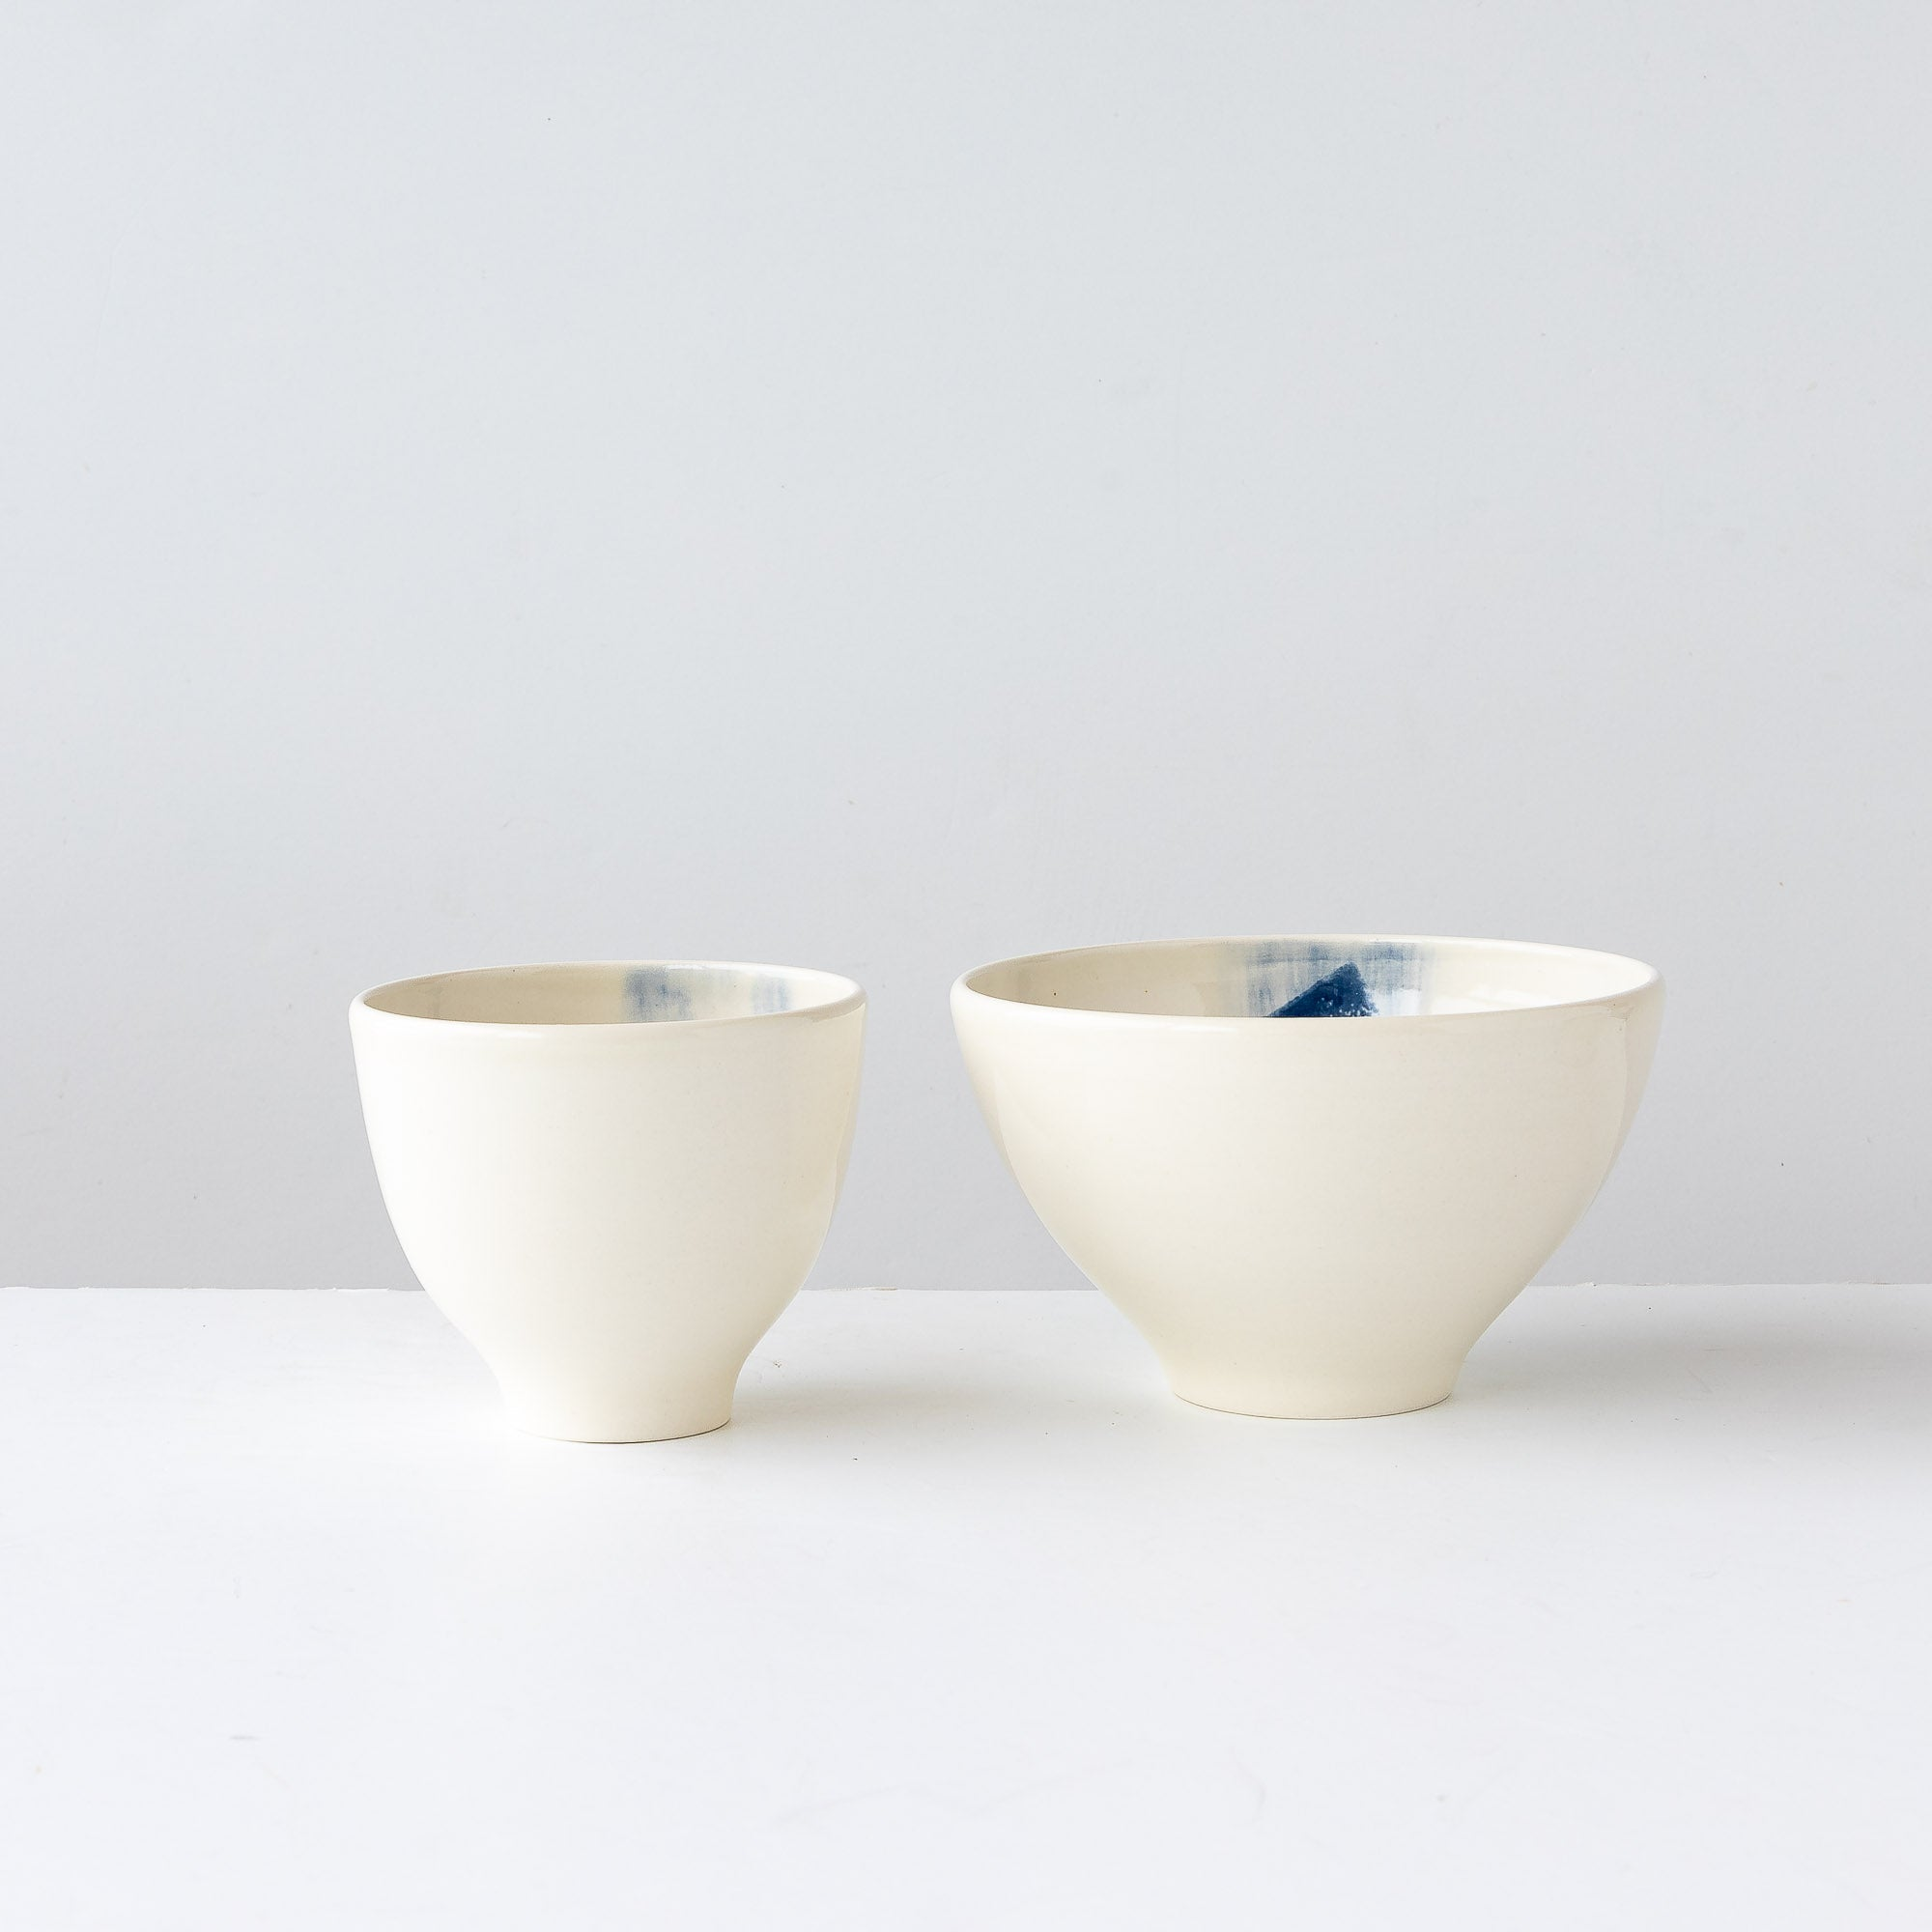 Top View - Hand Thrown White & Blue Porcelain Bowls - Sold by Chic & Basta